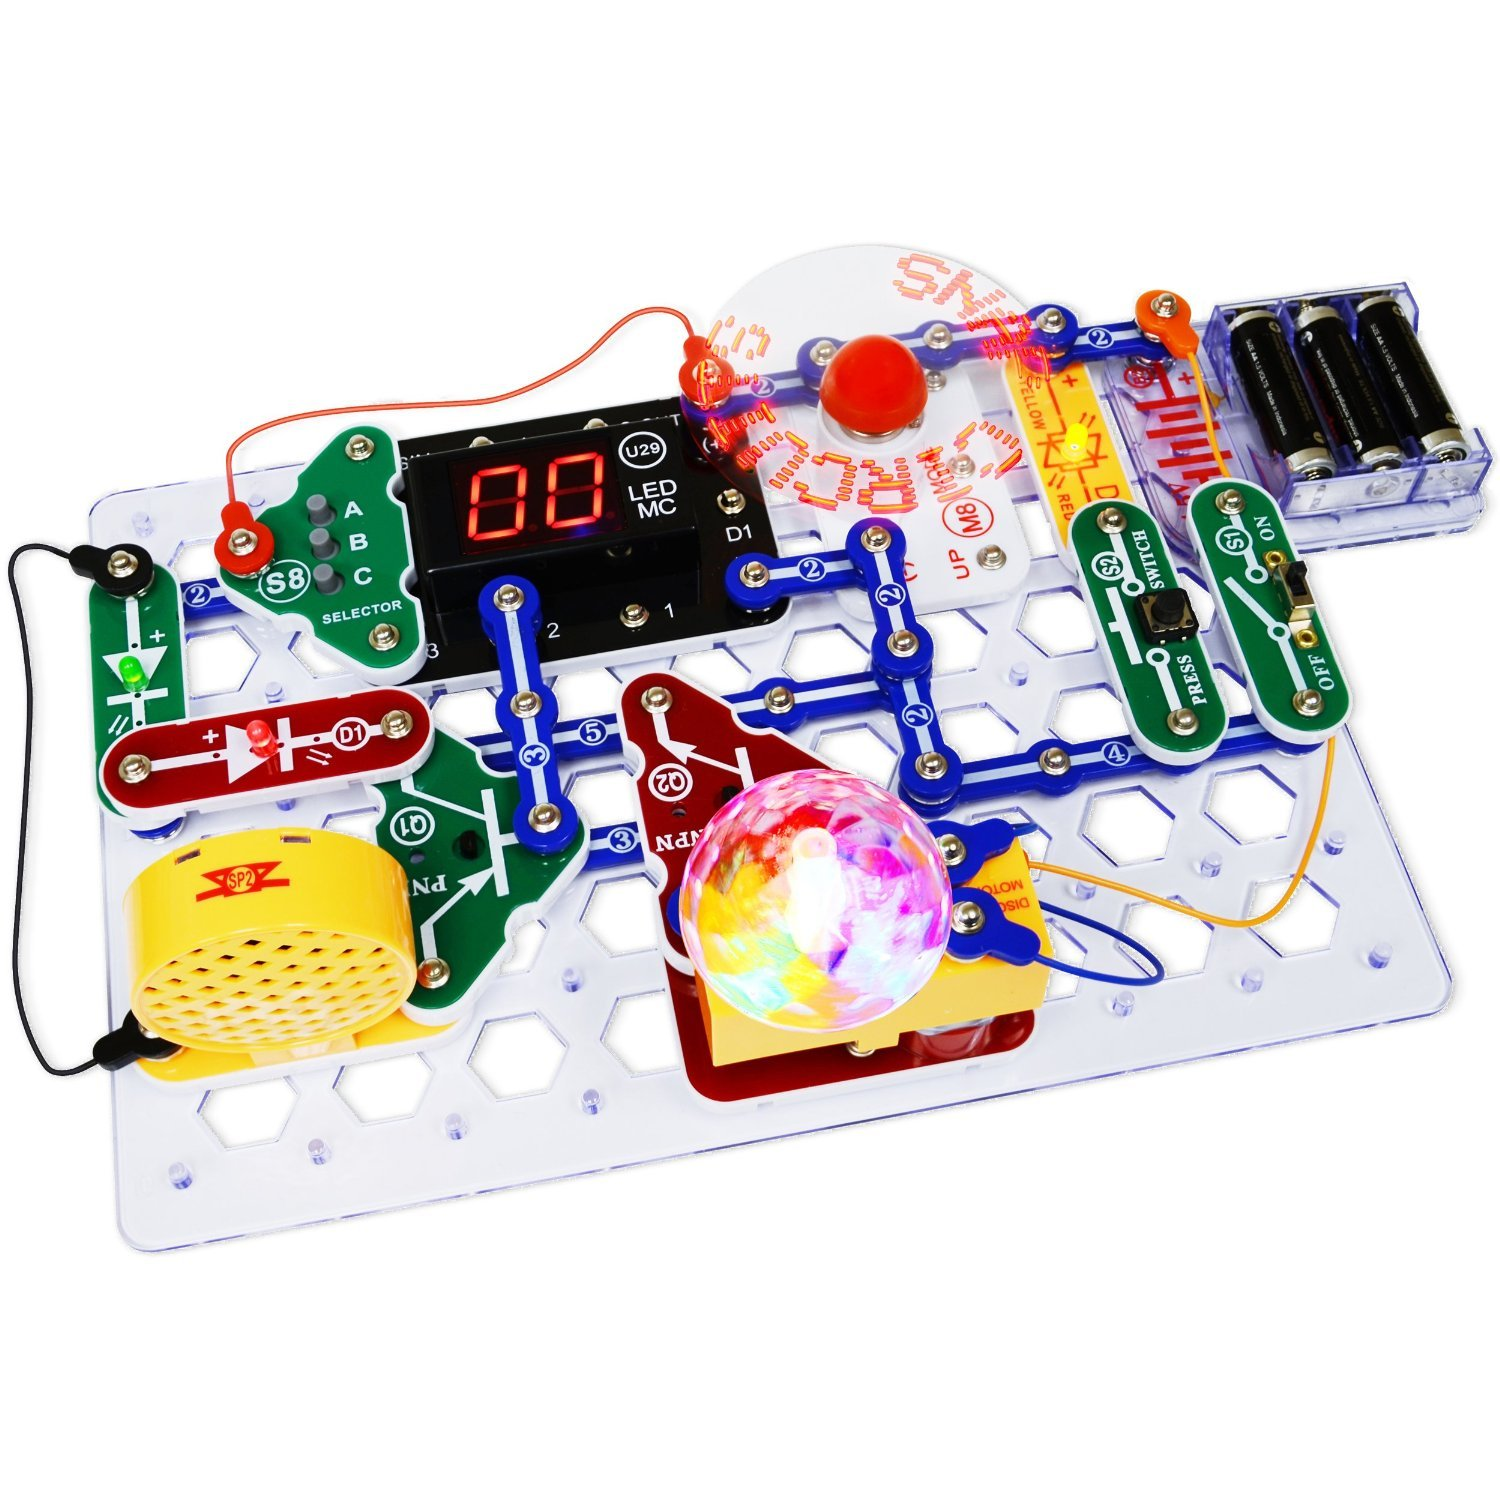 Snap Circuits Elenco Arcade Deluxe Electrical Electronics Project Kid Educational Engineering Kit With Battery Eliminator Toys Games